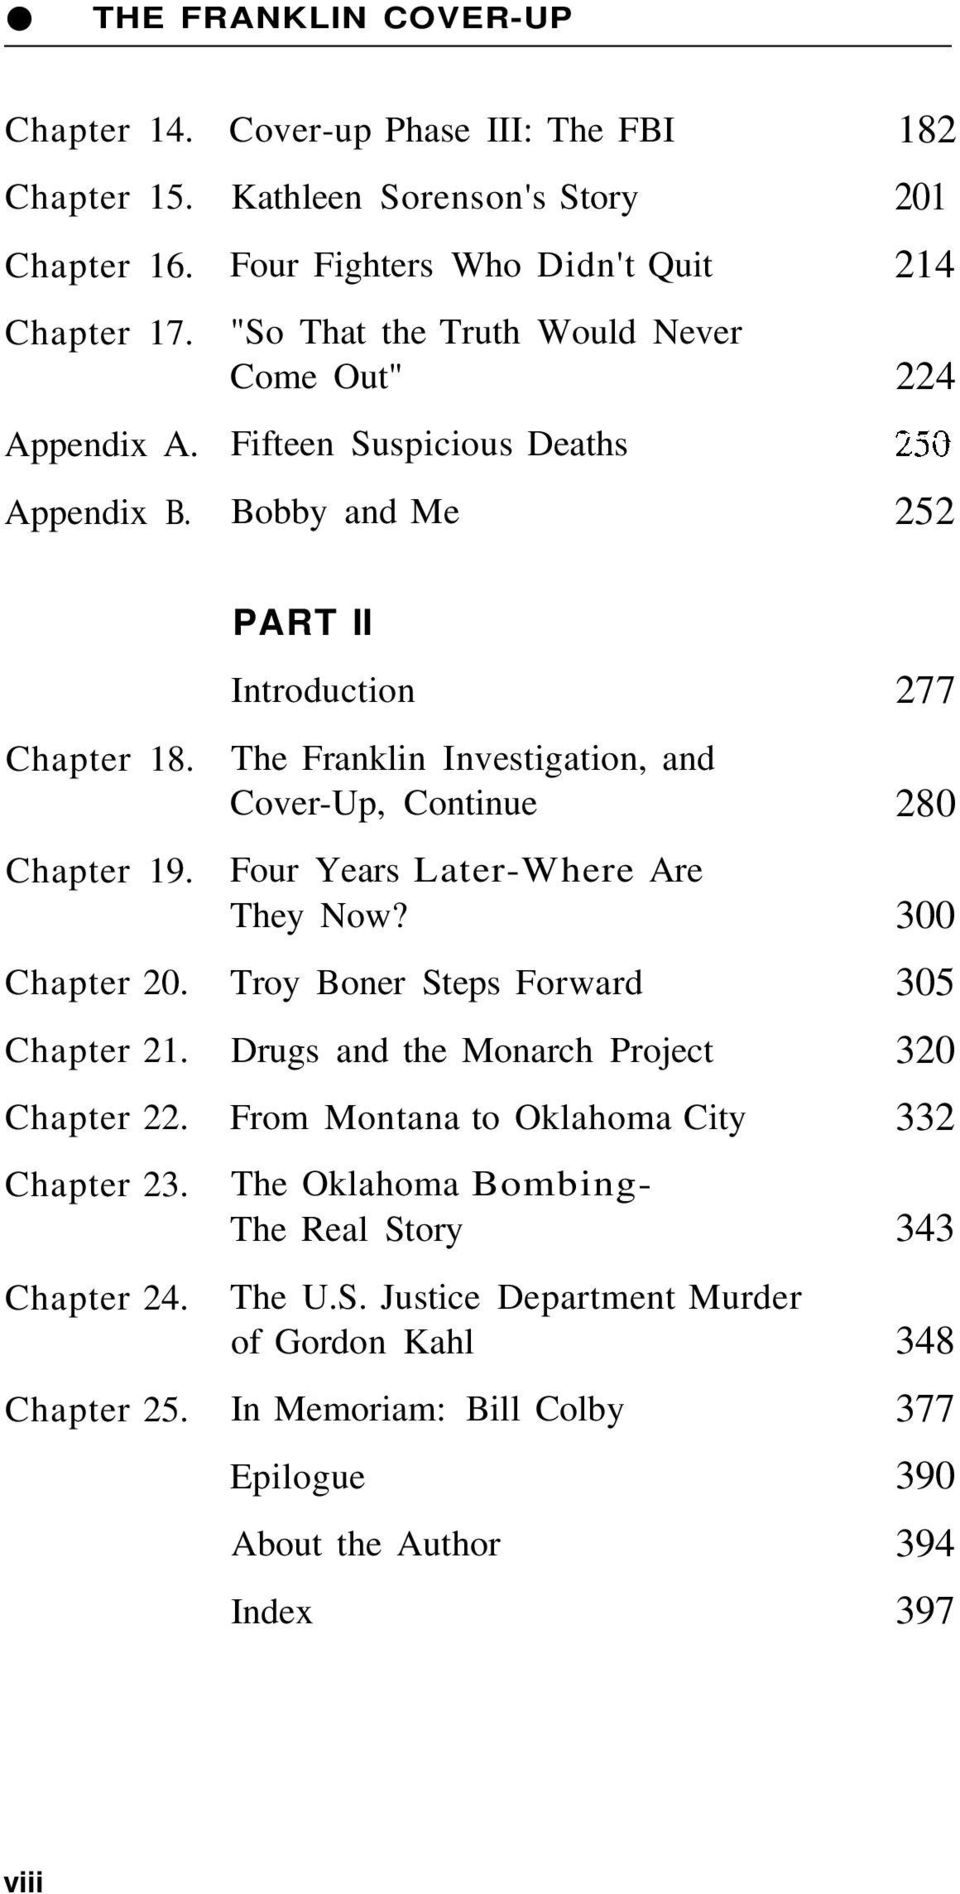 Chapter 18. Chapter 19. Chapter 20. Chapter 21. Chapter 22. Chapter 23. Chapter 24. Chapter 25.